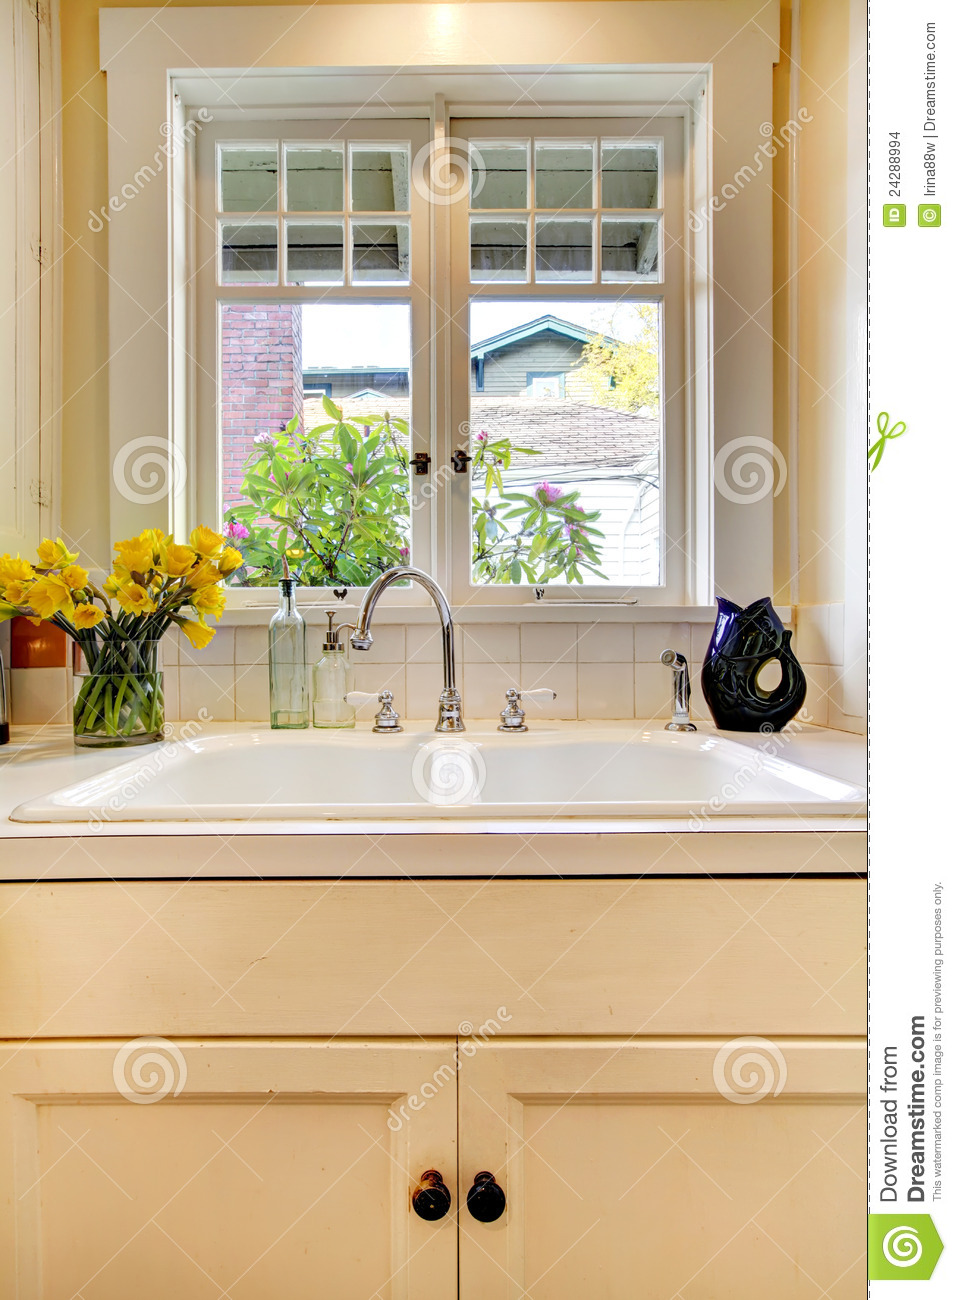 Kitchen sink and white cabinet with window stock images for House plans with kitchen sink window